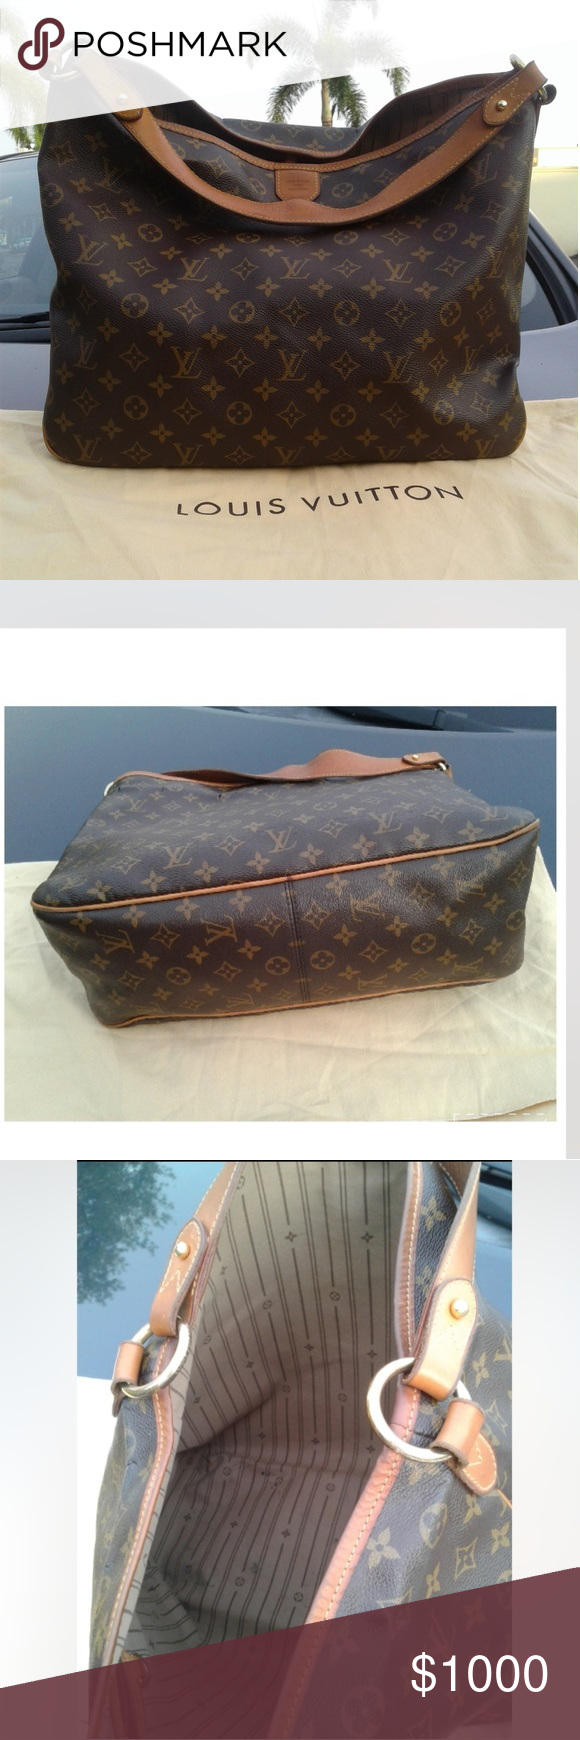 36338cf7460 Authentic Louis Vuitton Delightful Purse 100% authentic Guarantee. Item  will be verified authentic by